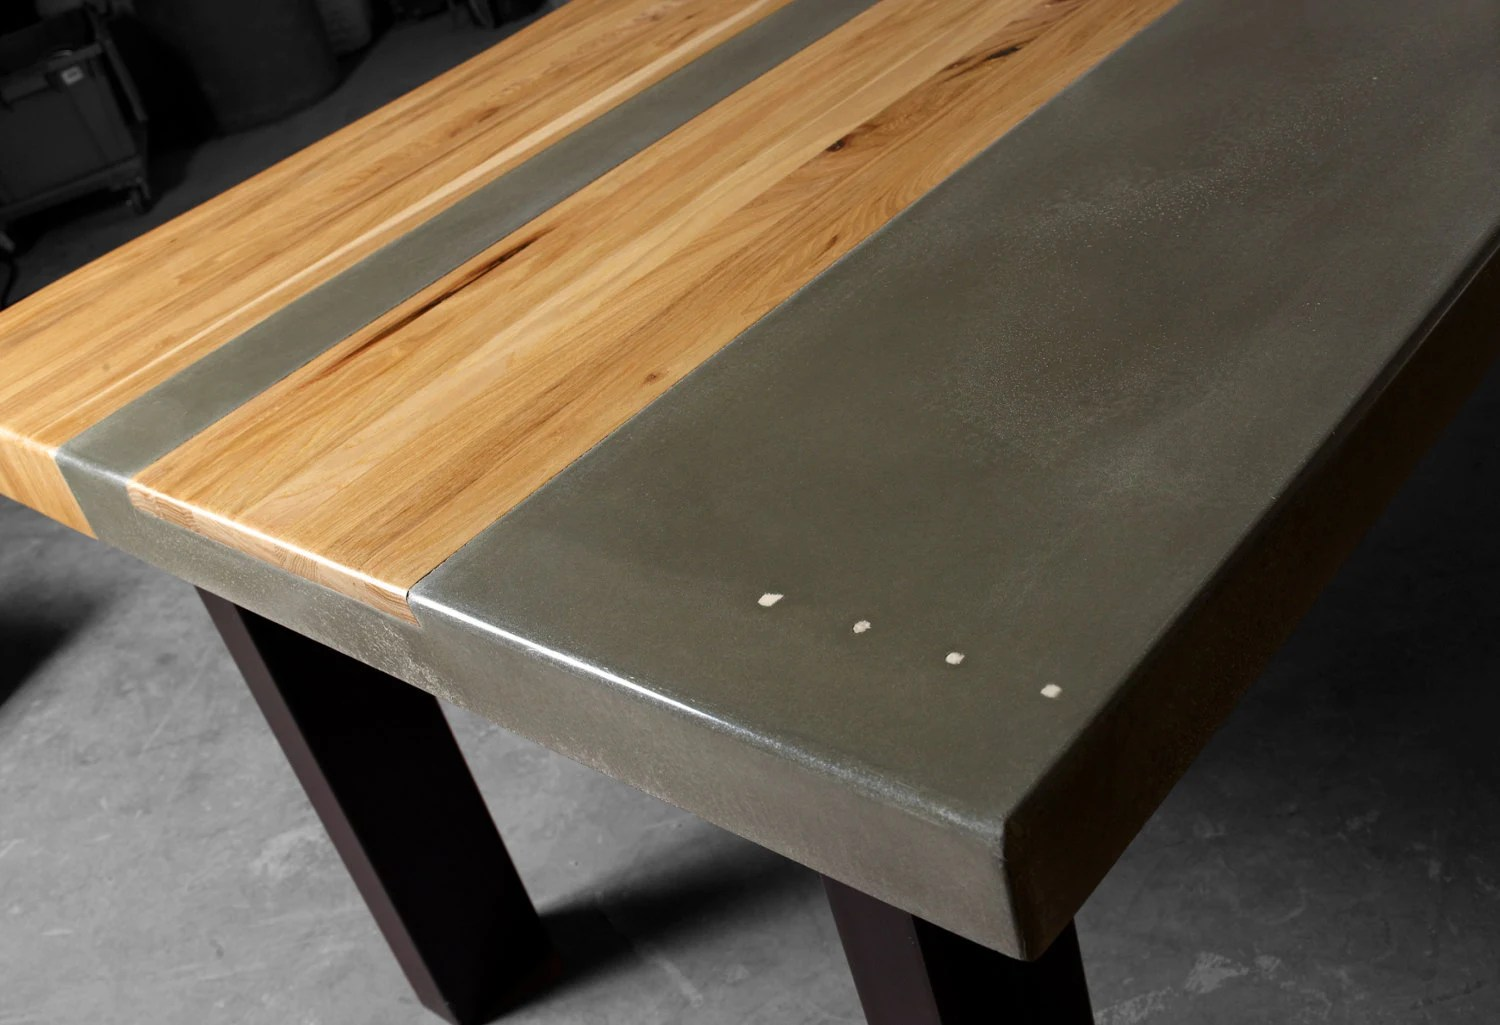 concrete wood steel dining kitchen table wood kitchen tables Concrete Wood Steel Dining Kitchen Table zoom